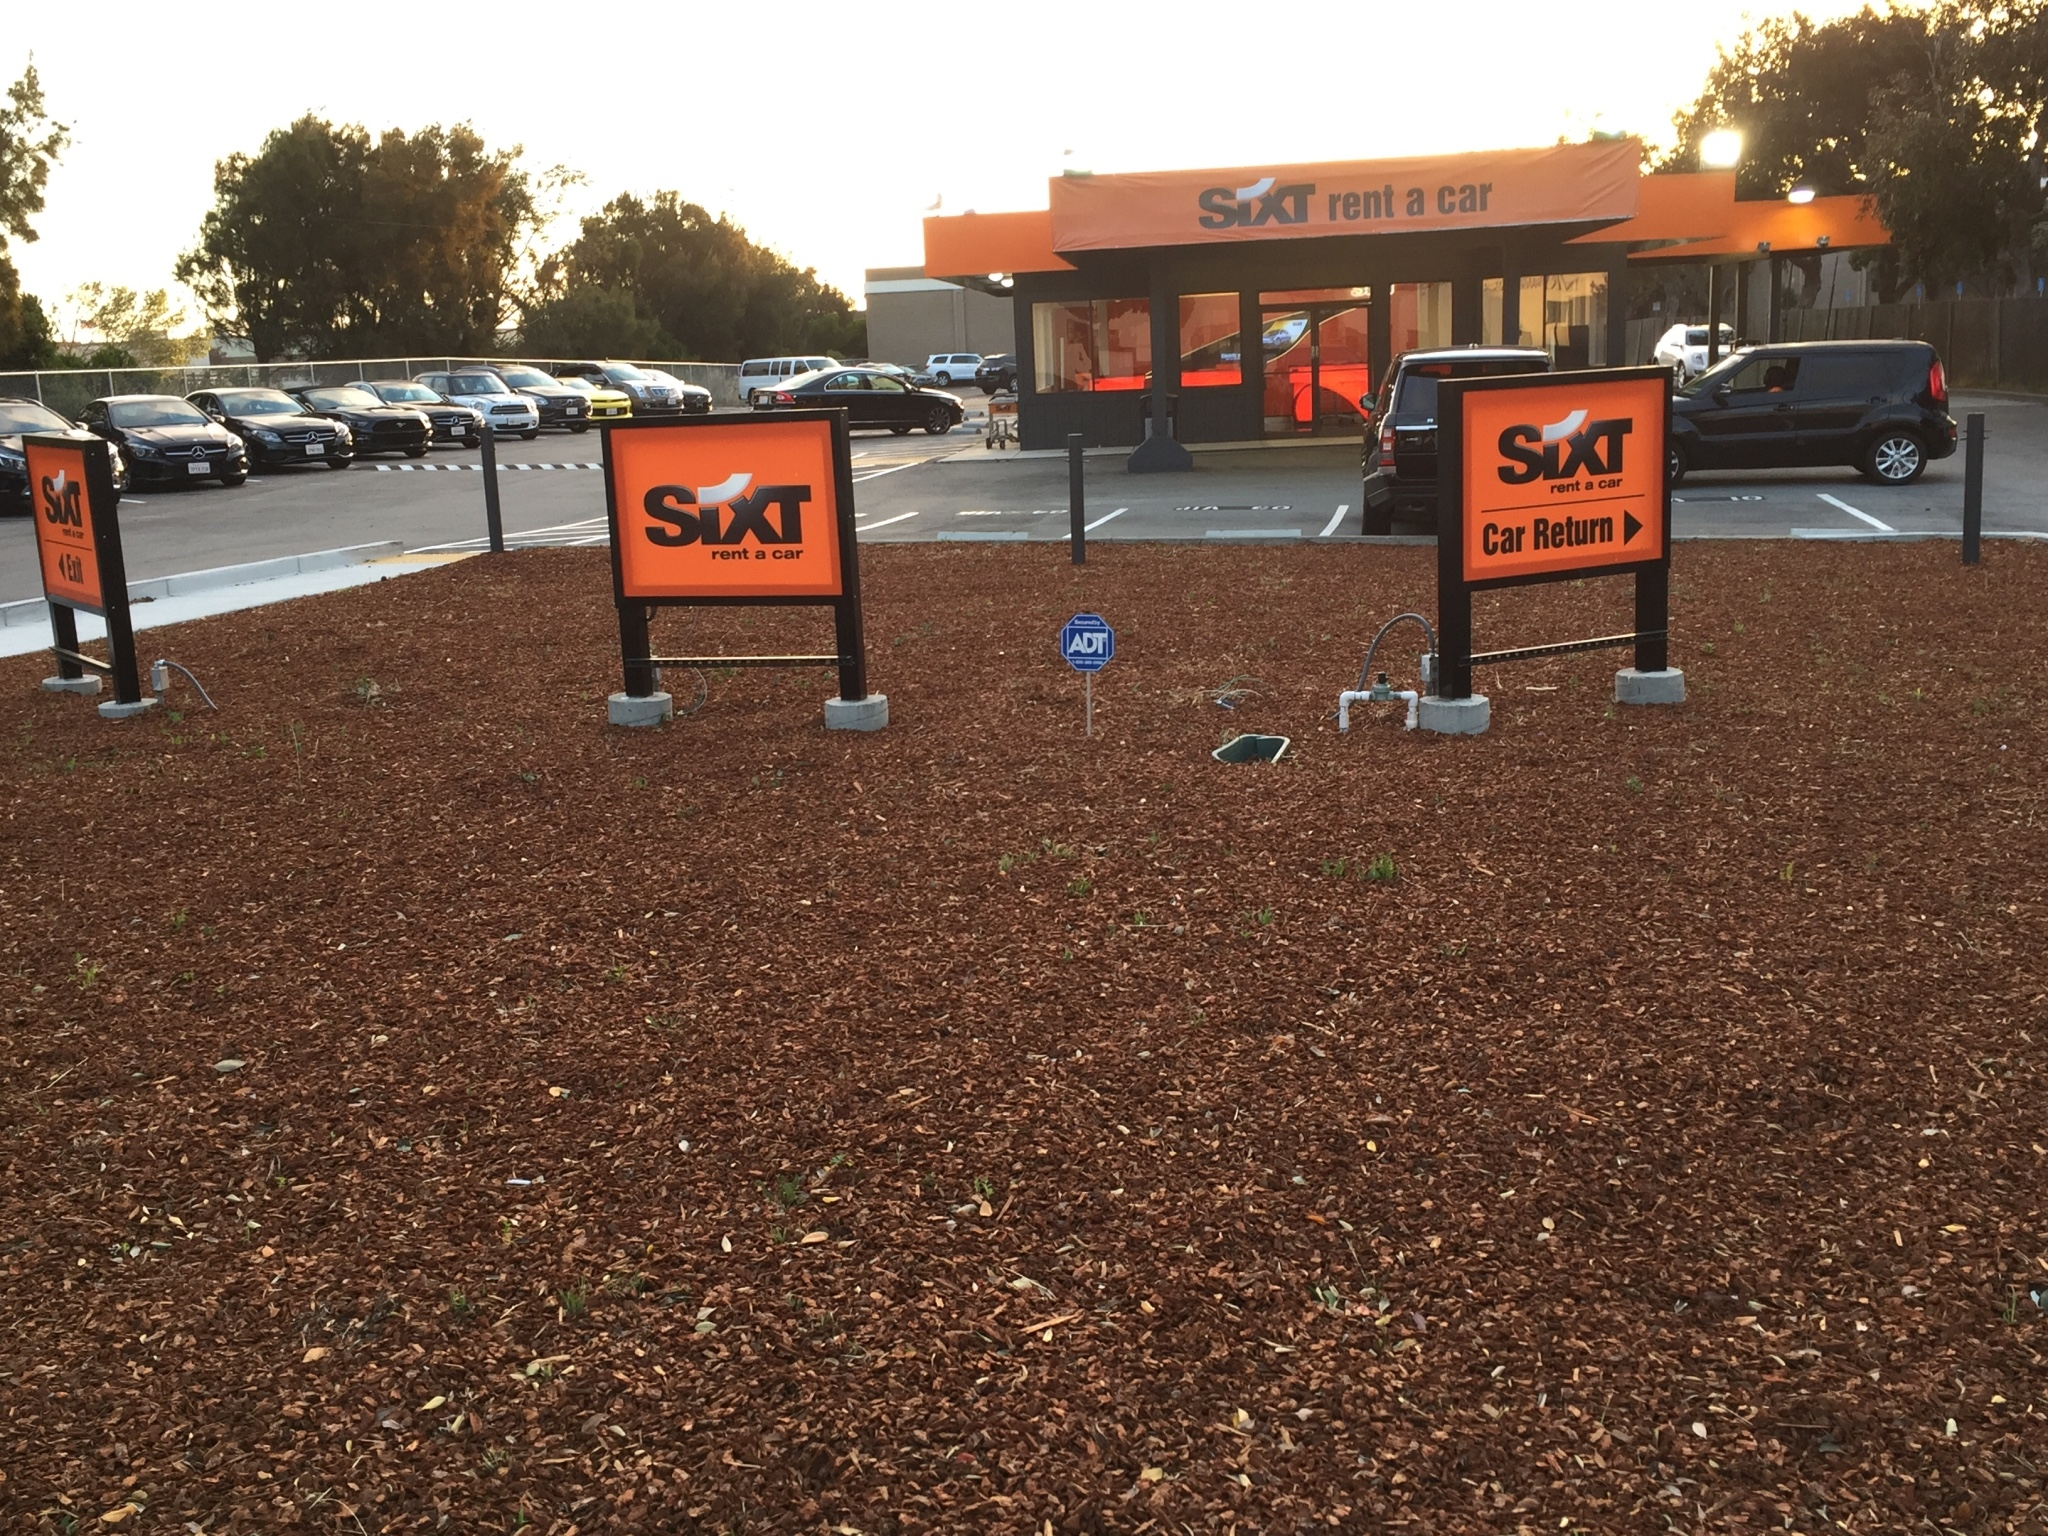 Sixt Rent A Car In Indianapolis, IN 46240